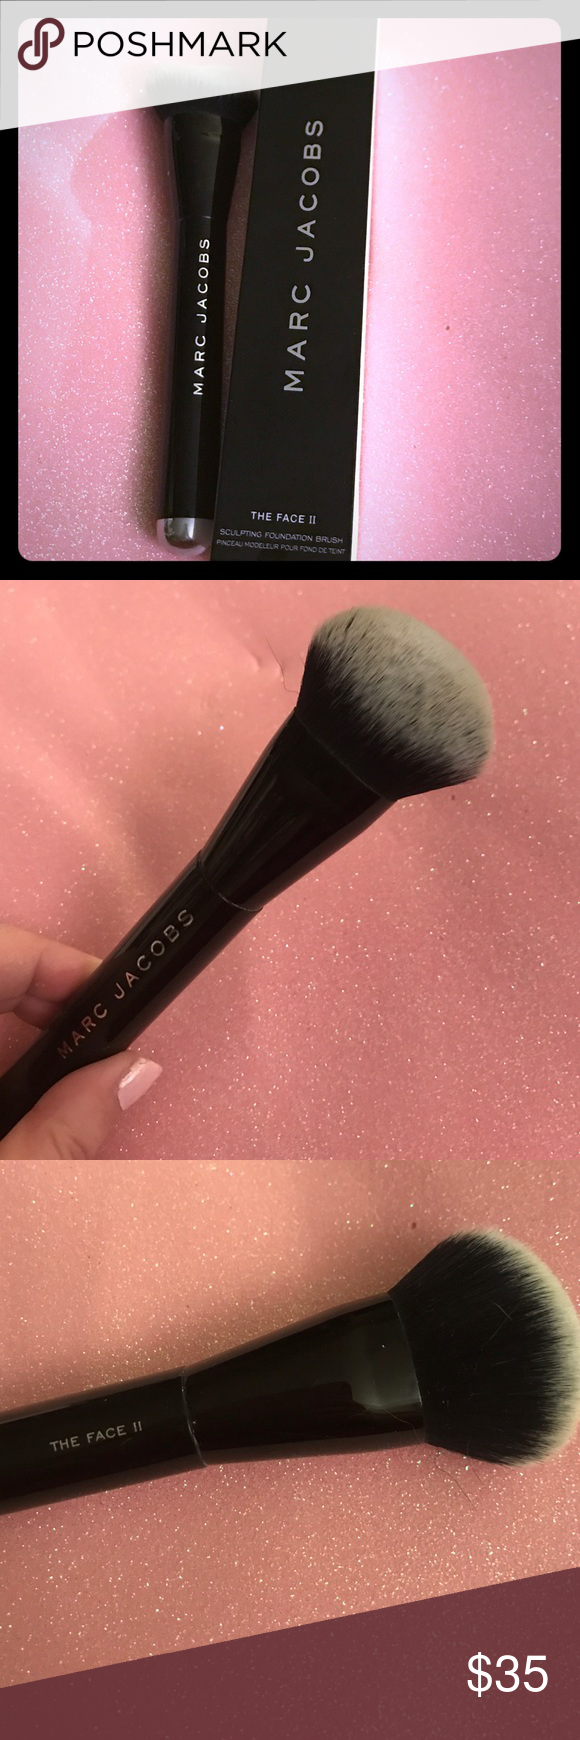 Marc Jacobs Face II Sculpting Foundation Brush No2 Marc